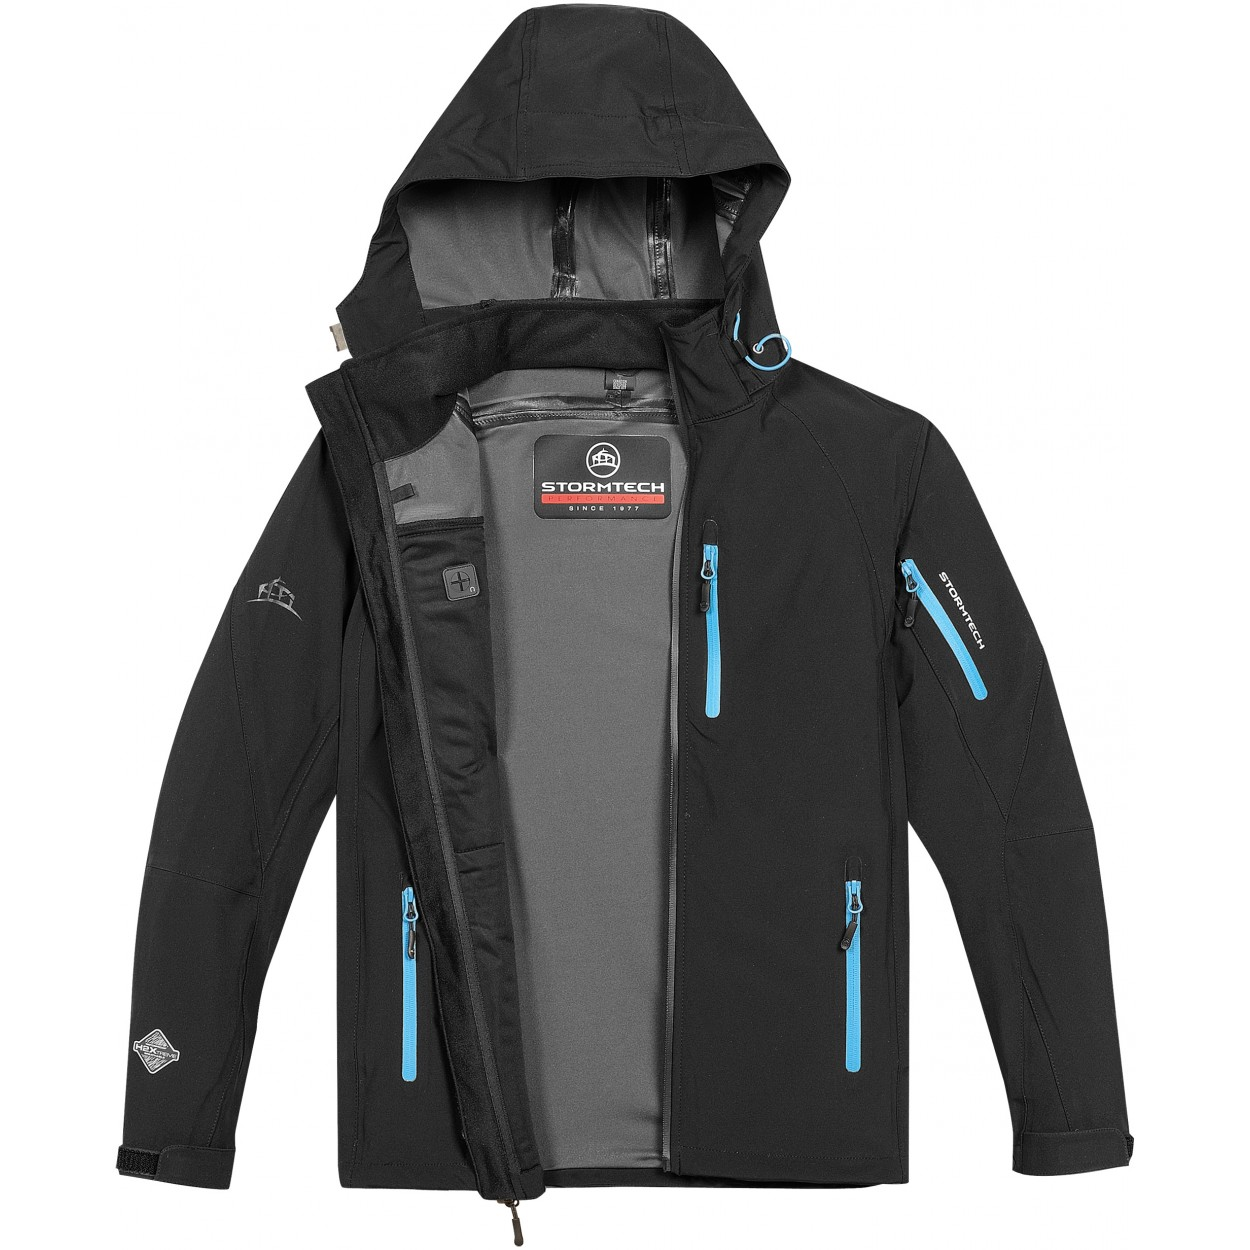 Stormtech Xb 2m Mens Expedition Softshell Jacket 225 00